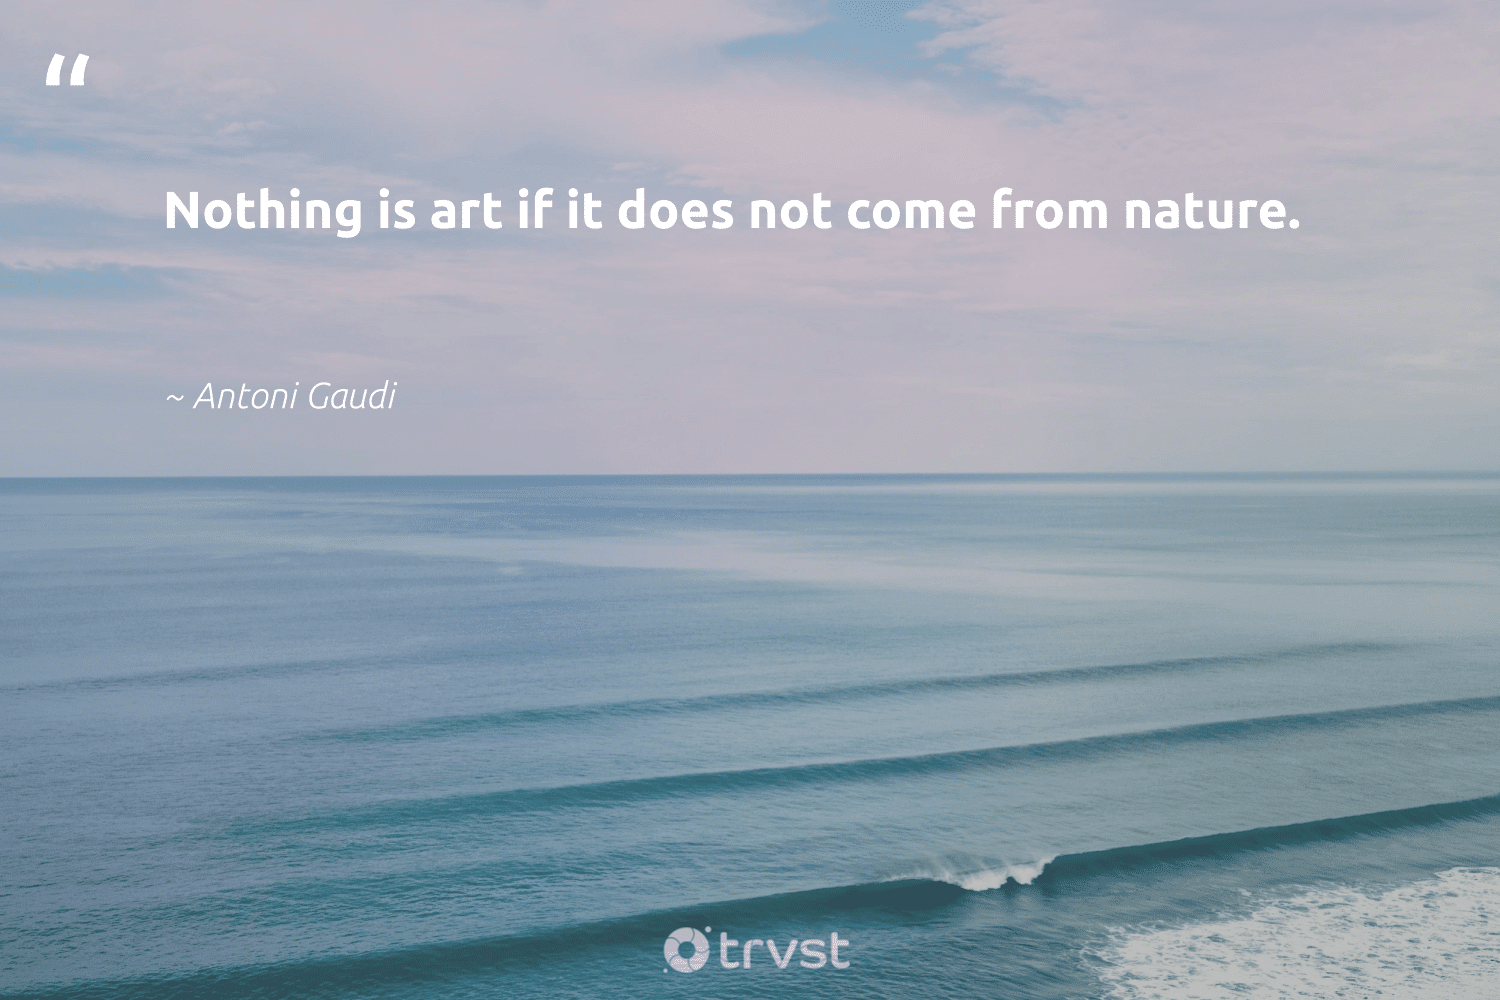 """""""Nothing is art if it does not come from nature.""""  - Antoni Gaudi #trvst #quotes #environment #nature #conservation #giveback #volunteer #changetheworld #mothernature #climatechange #savetheplanet #thinkgreen"""